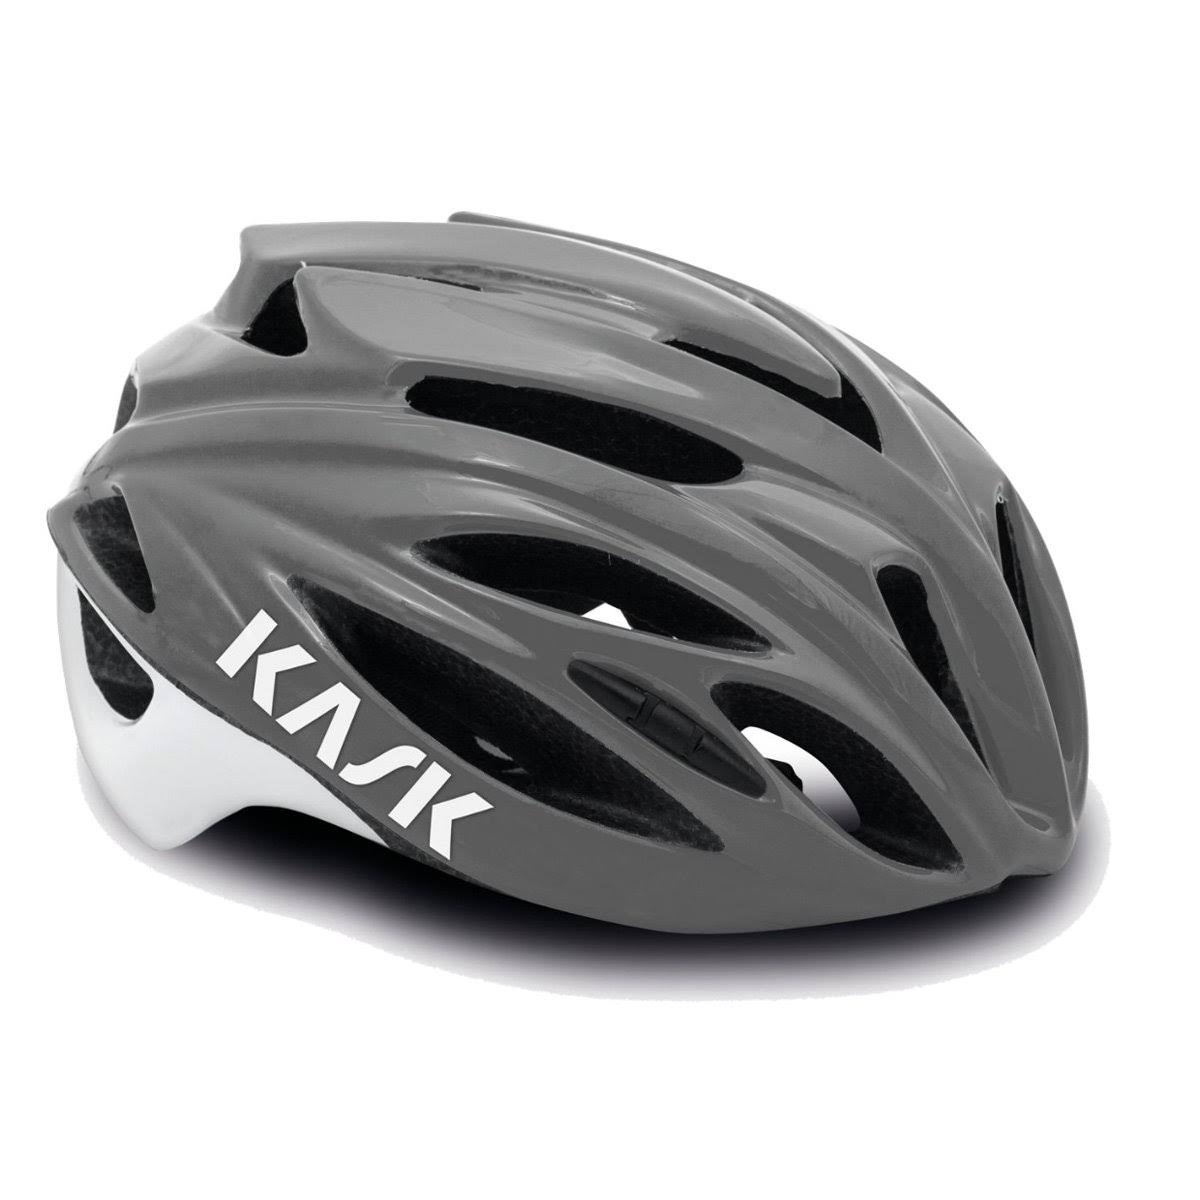 Kask Rapido Road Cycling Helmet - Anthracite, Large